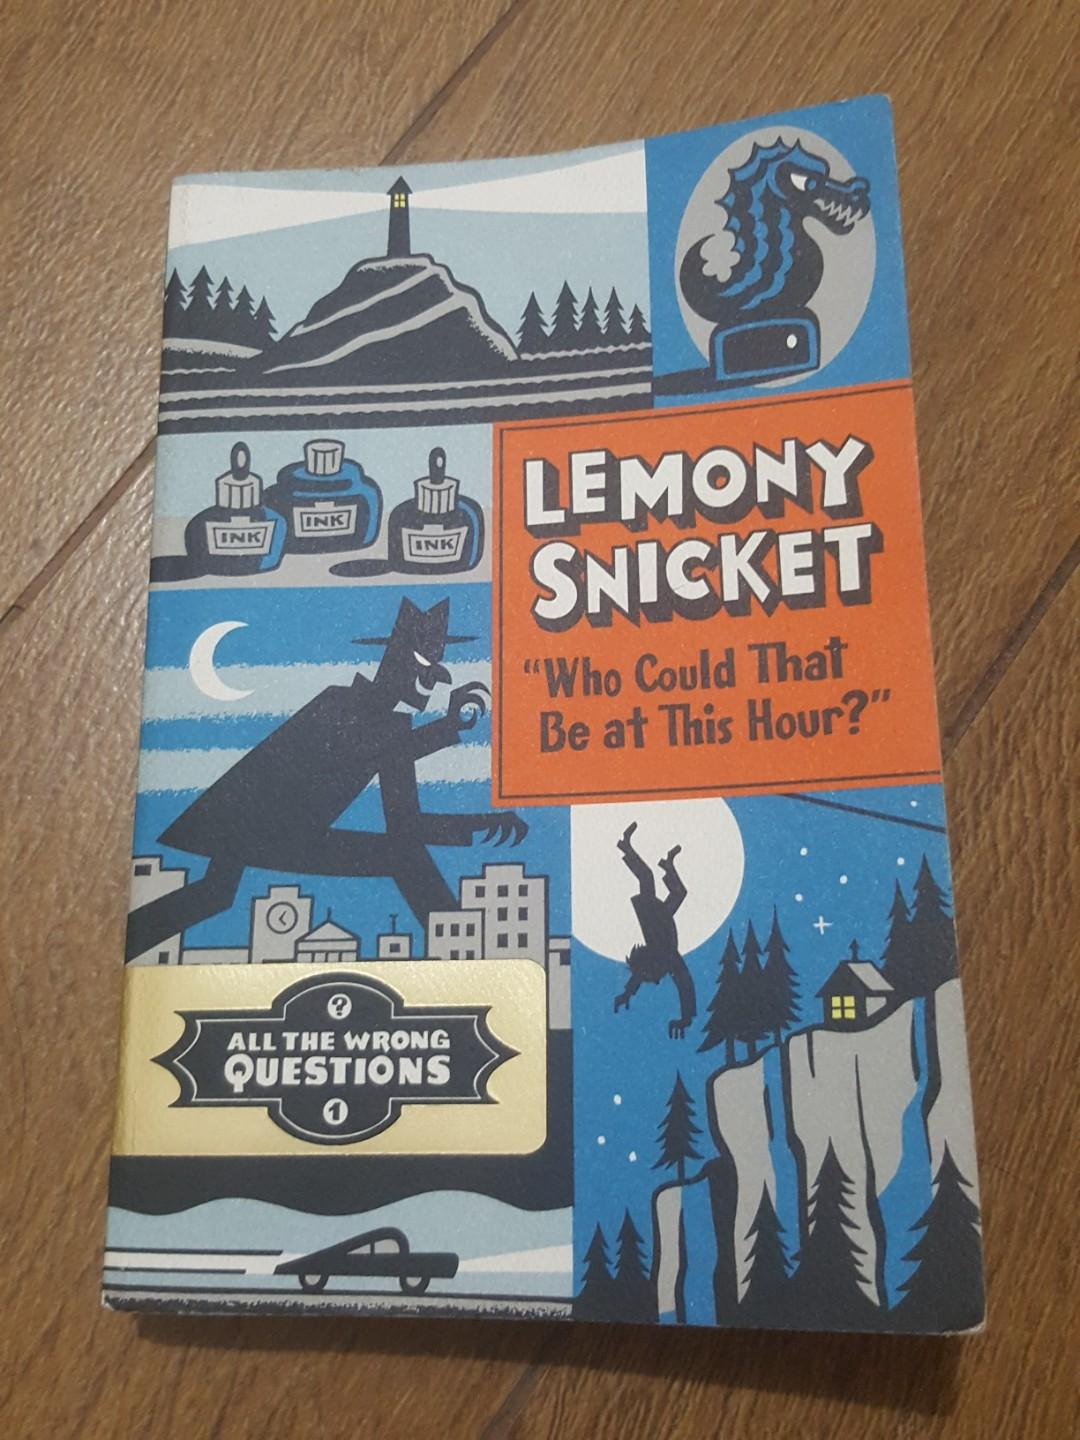 All The Wrong Questions 1(Who Could That Be at This Hour?) Lemony Snicket